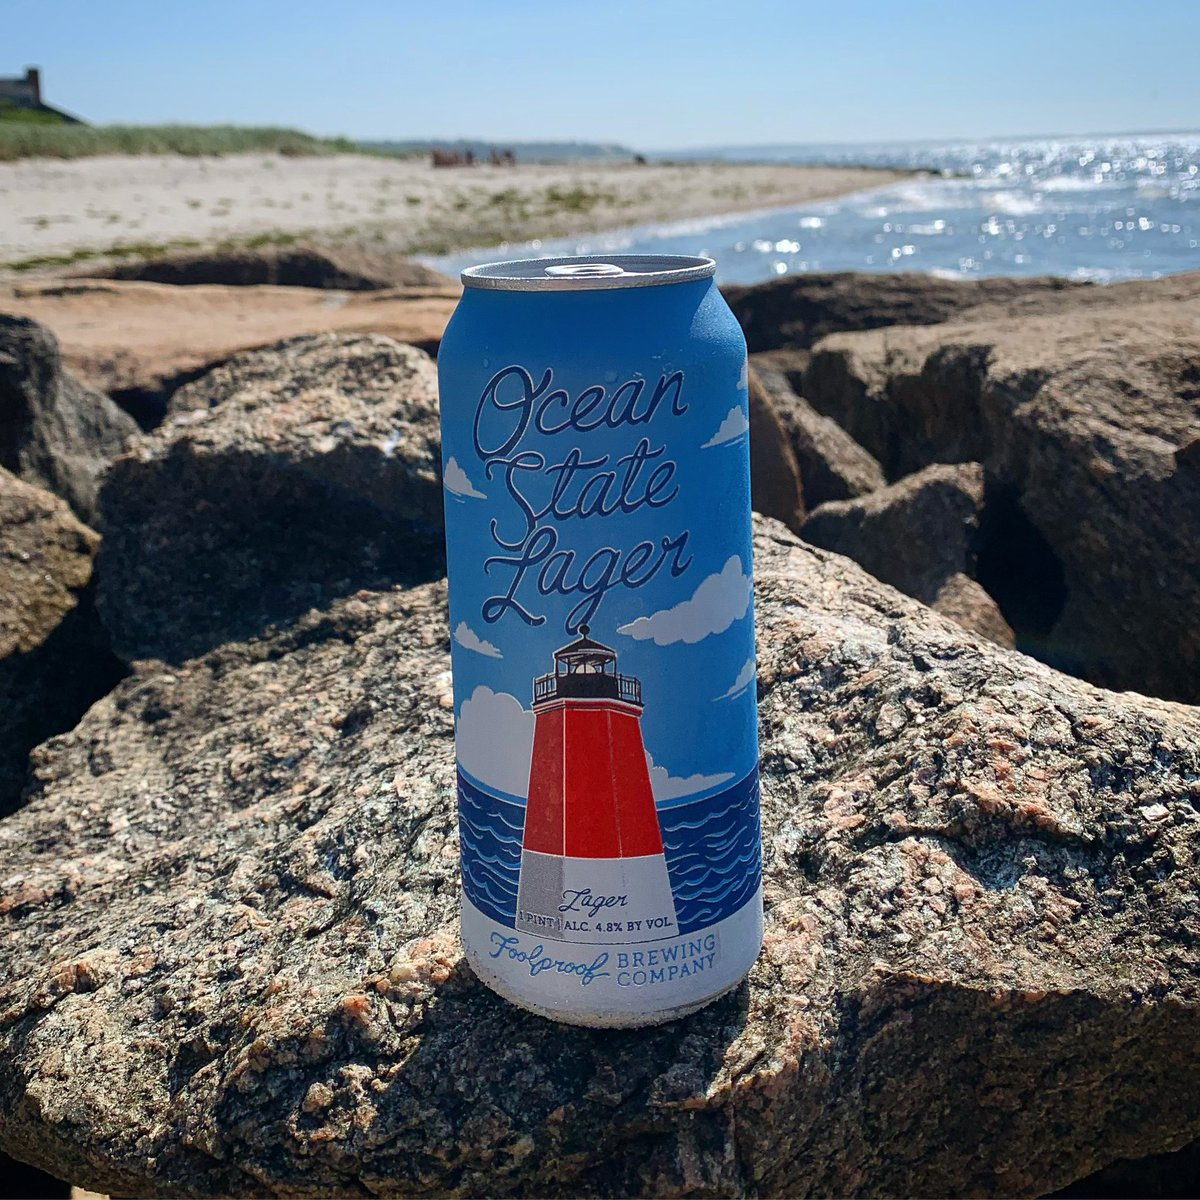 Heat remedy #1 right here. It's gonna be another scorcher. Taproom opens at 1:00. #heatwave #osl #lager #oceanstate #RhodeIsland #summer #craftbeer